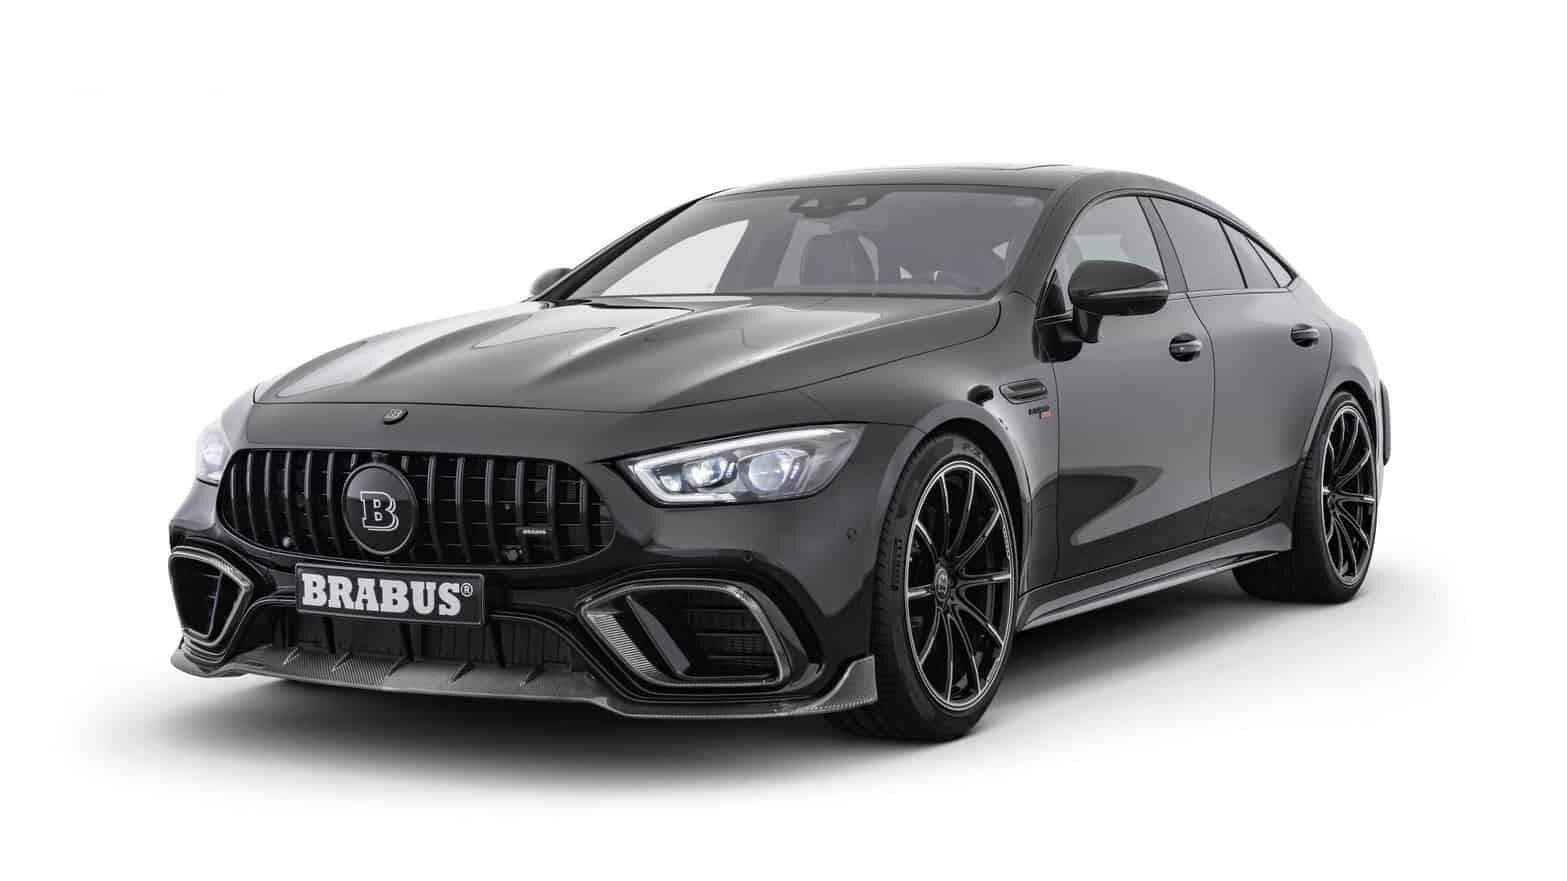 This new Brabus AMG GT 4dr will do 0-100kph in 2.9s